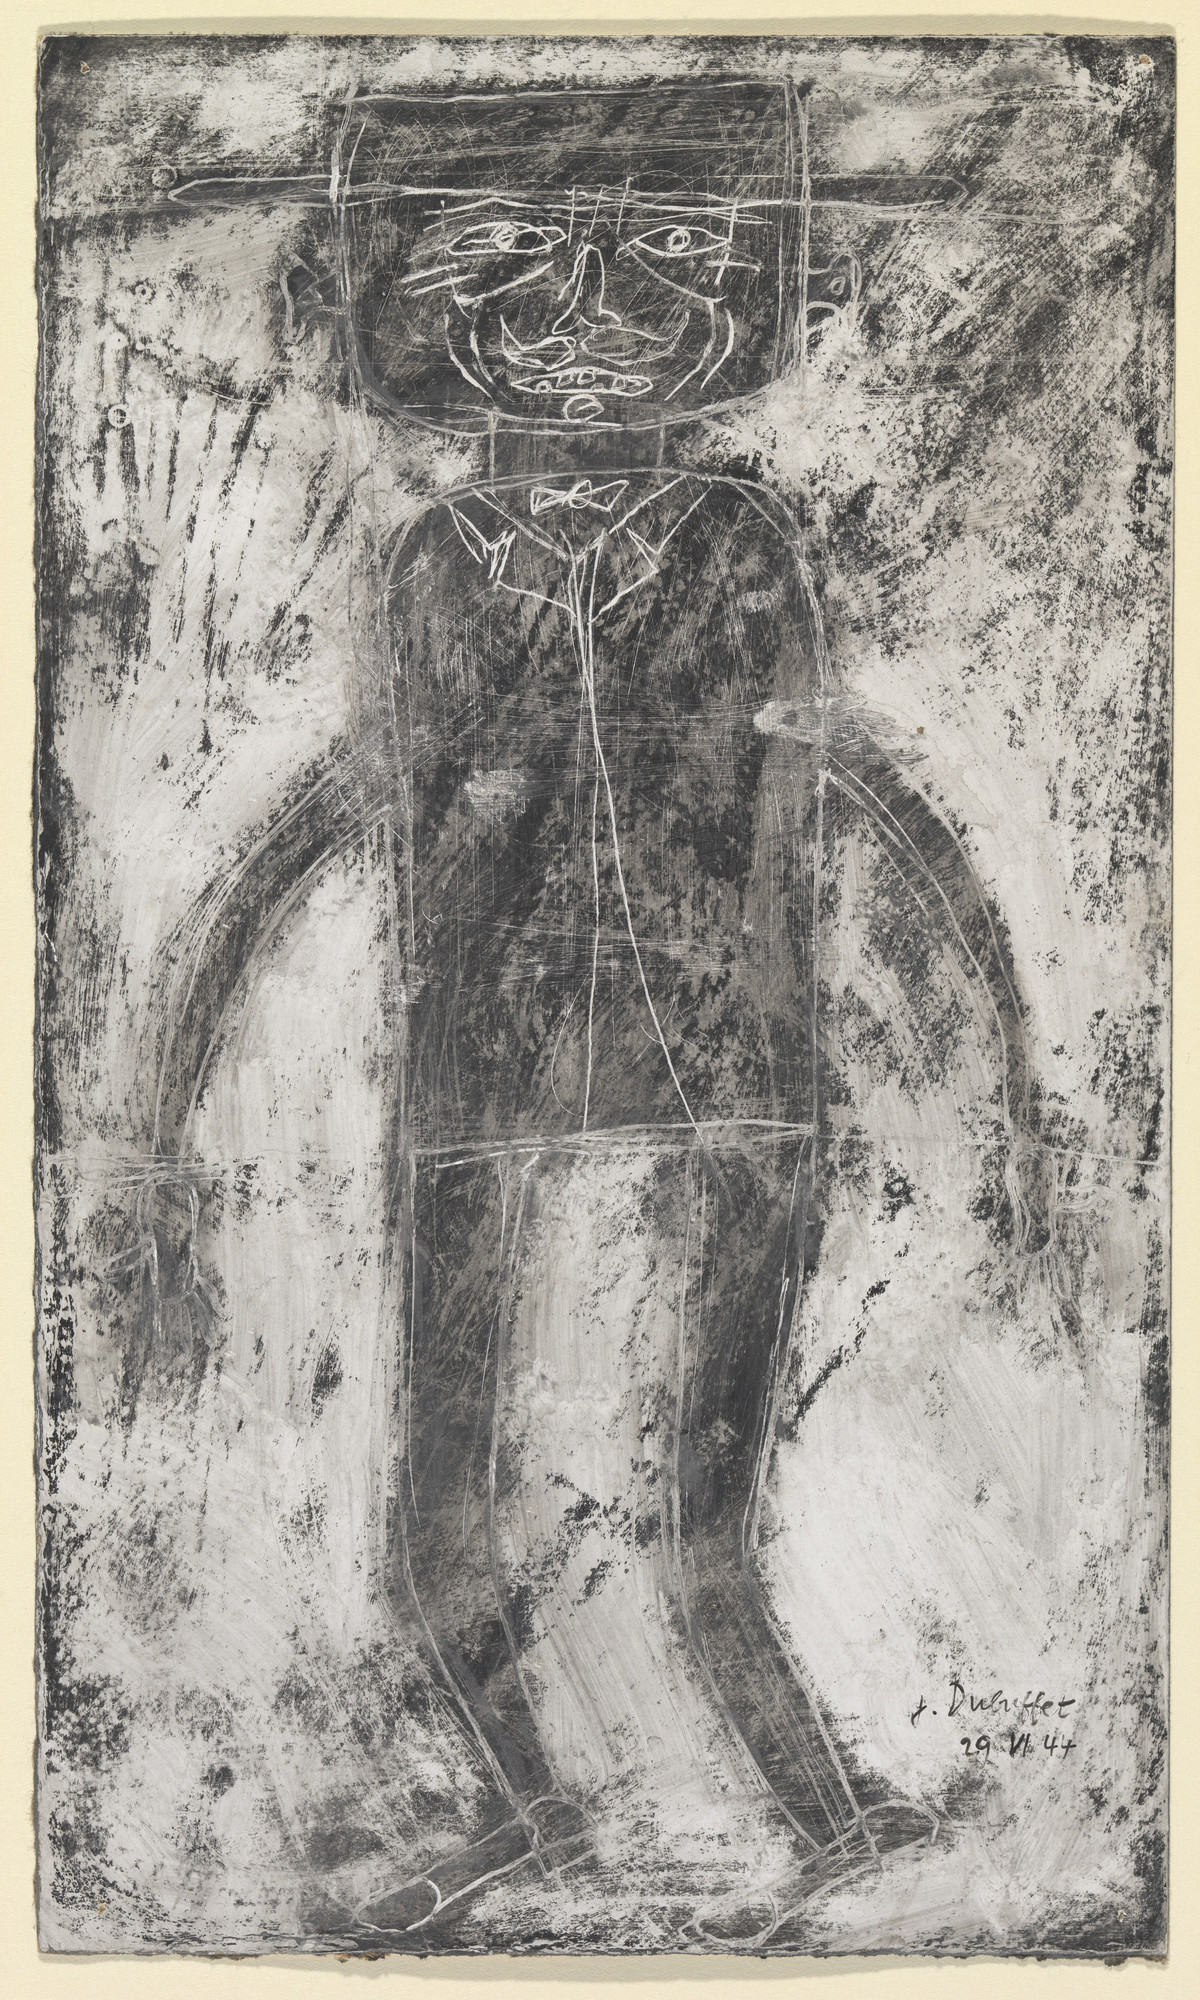 Jean Dubuffet. Personage. June 29, 1944